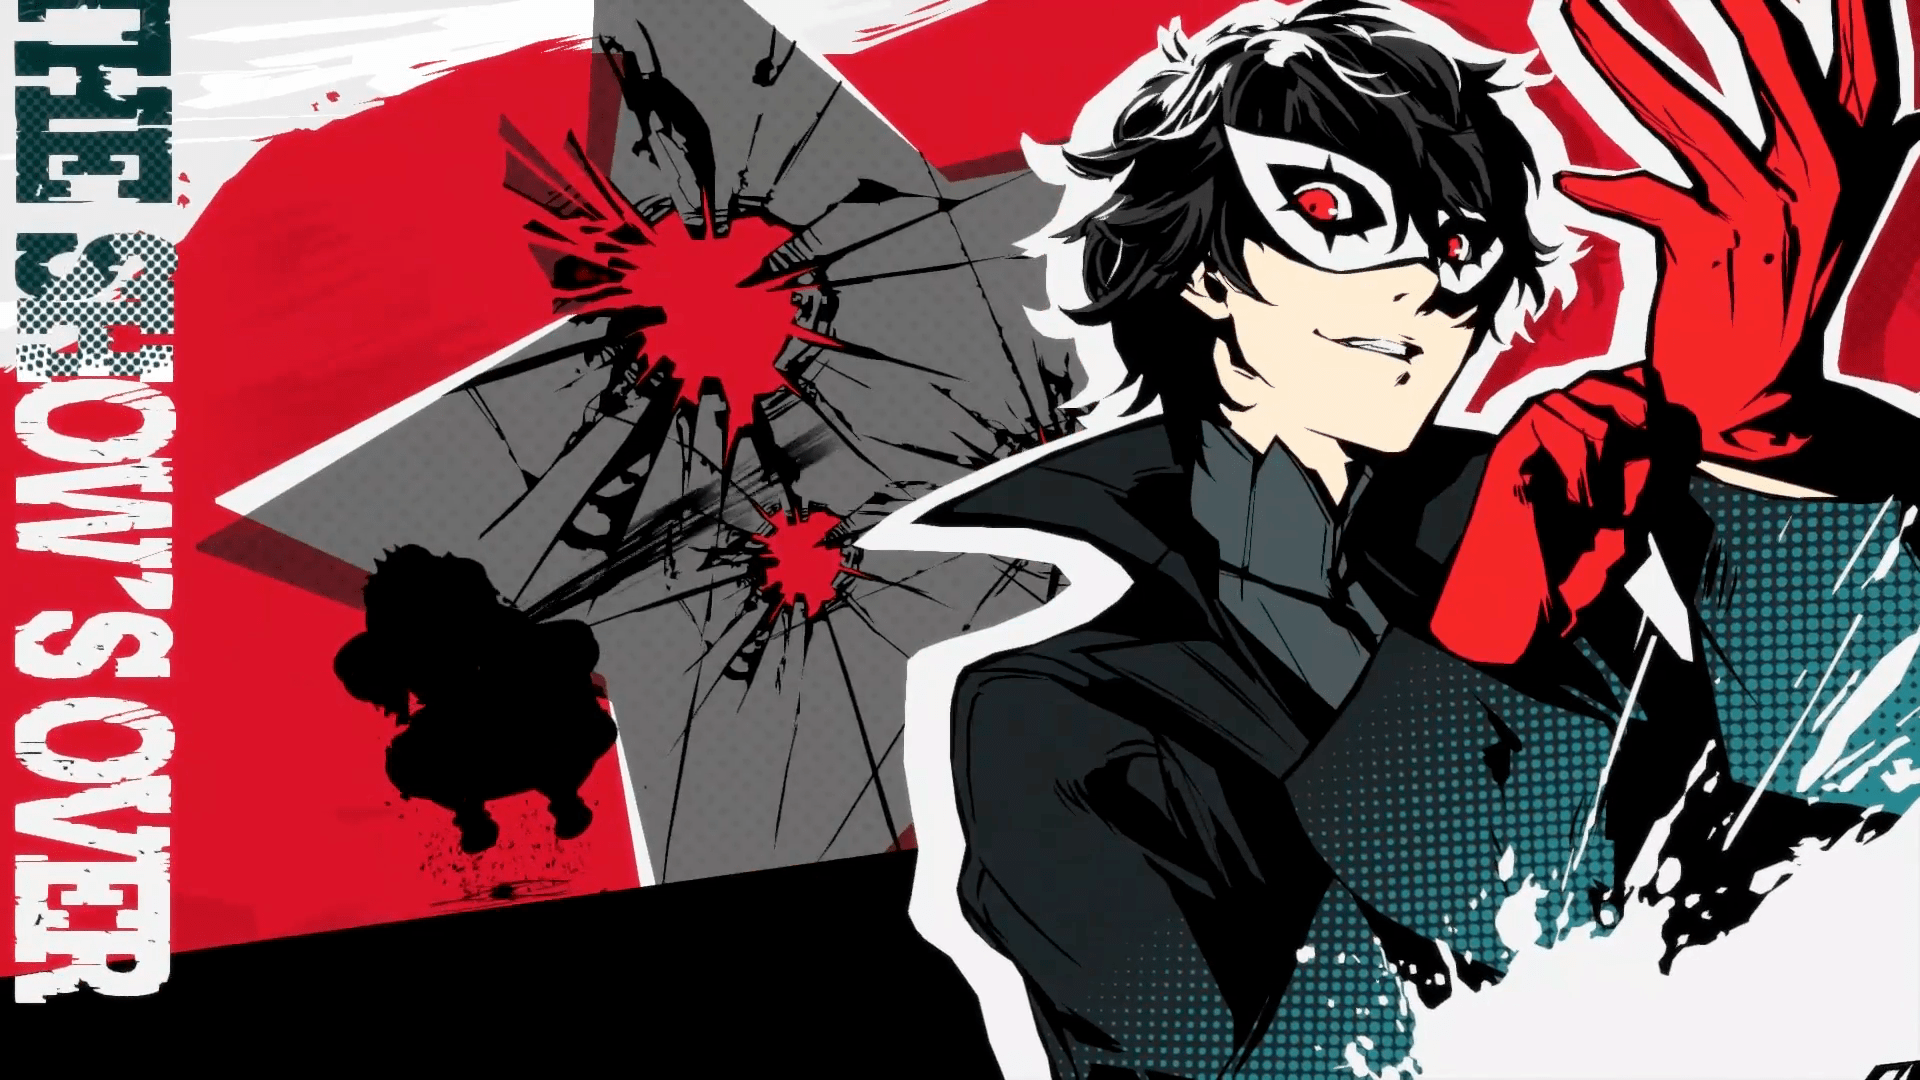 Review - Persona 5 (PS4)